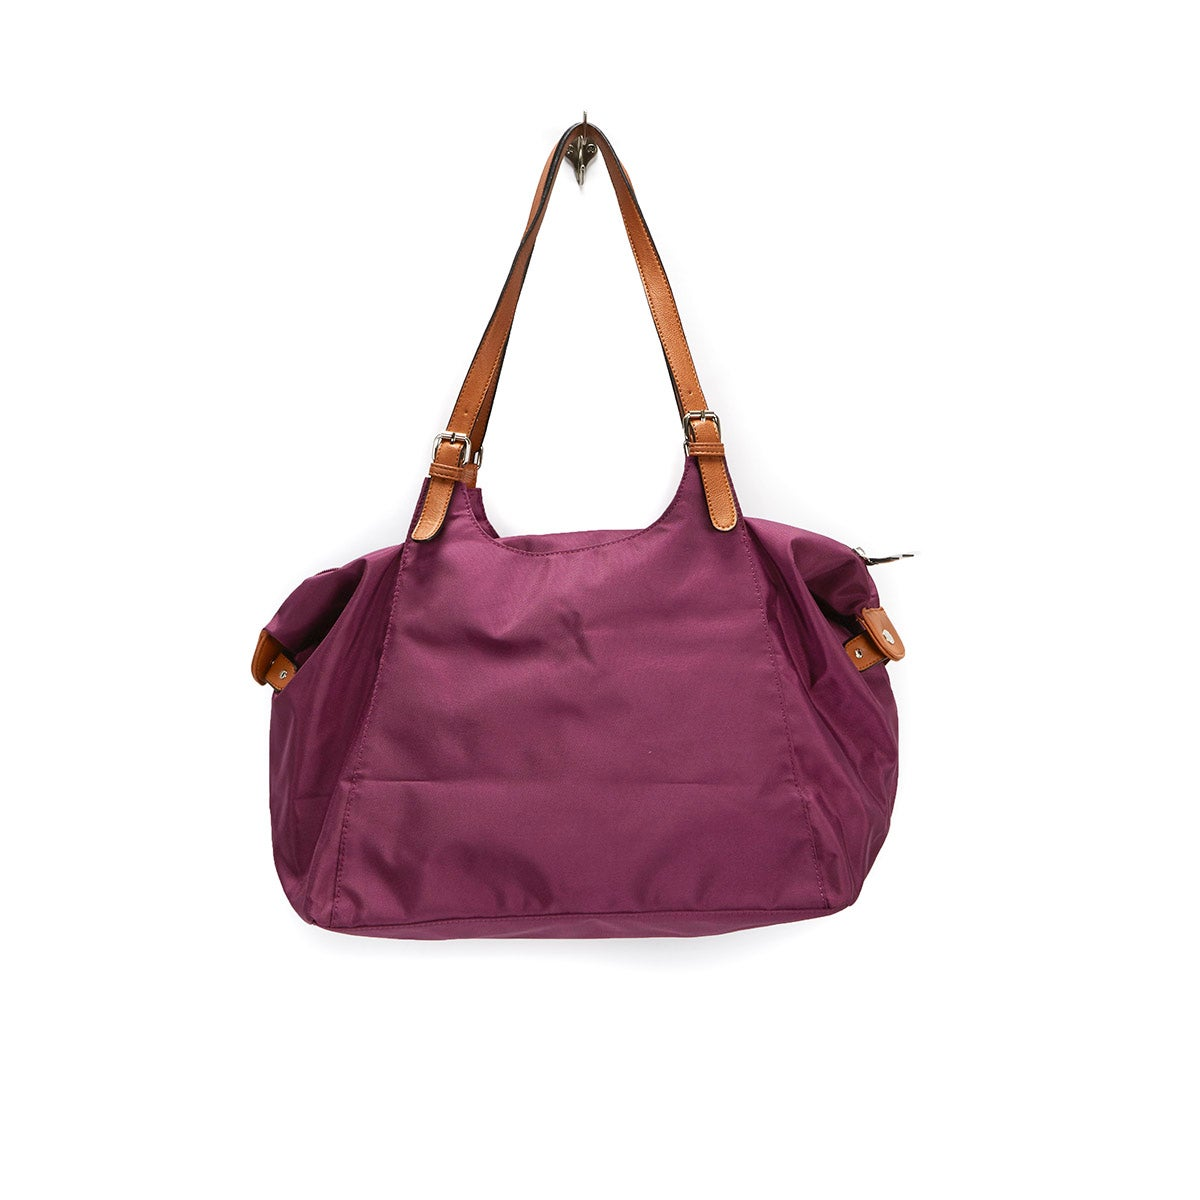 Lds Roots73 purple nylon large tote bag